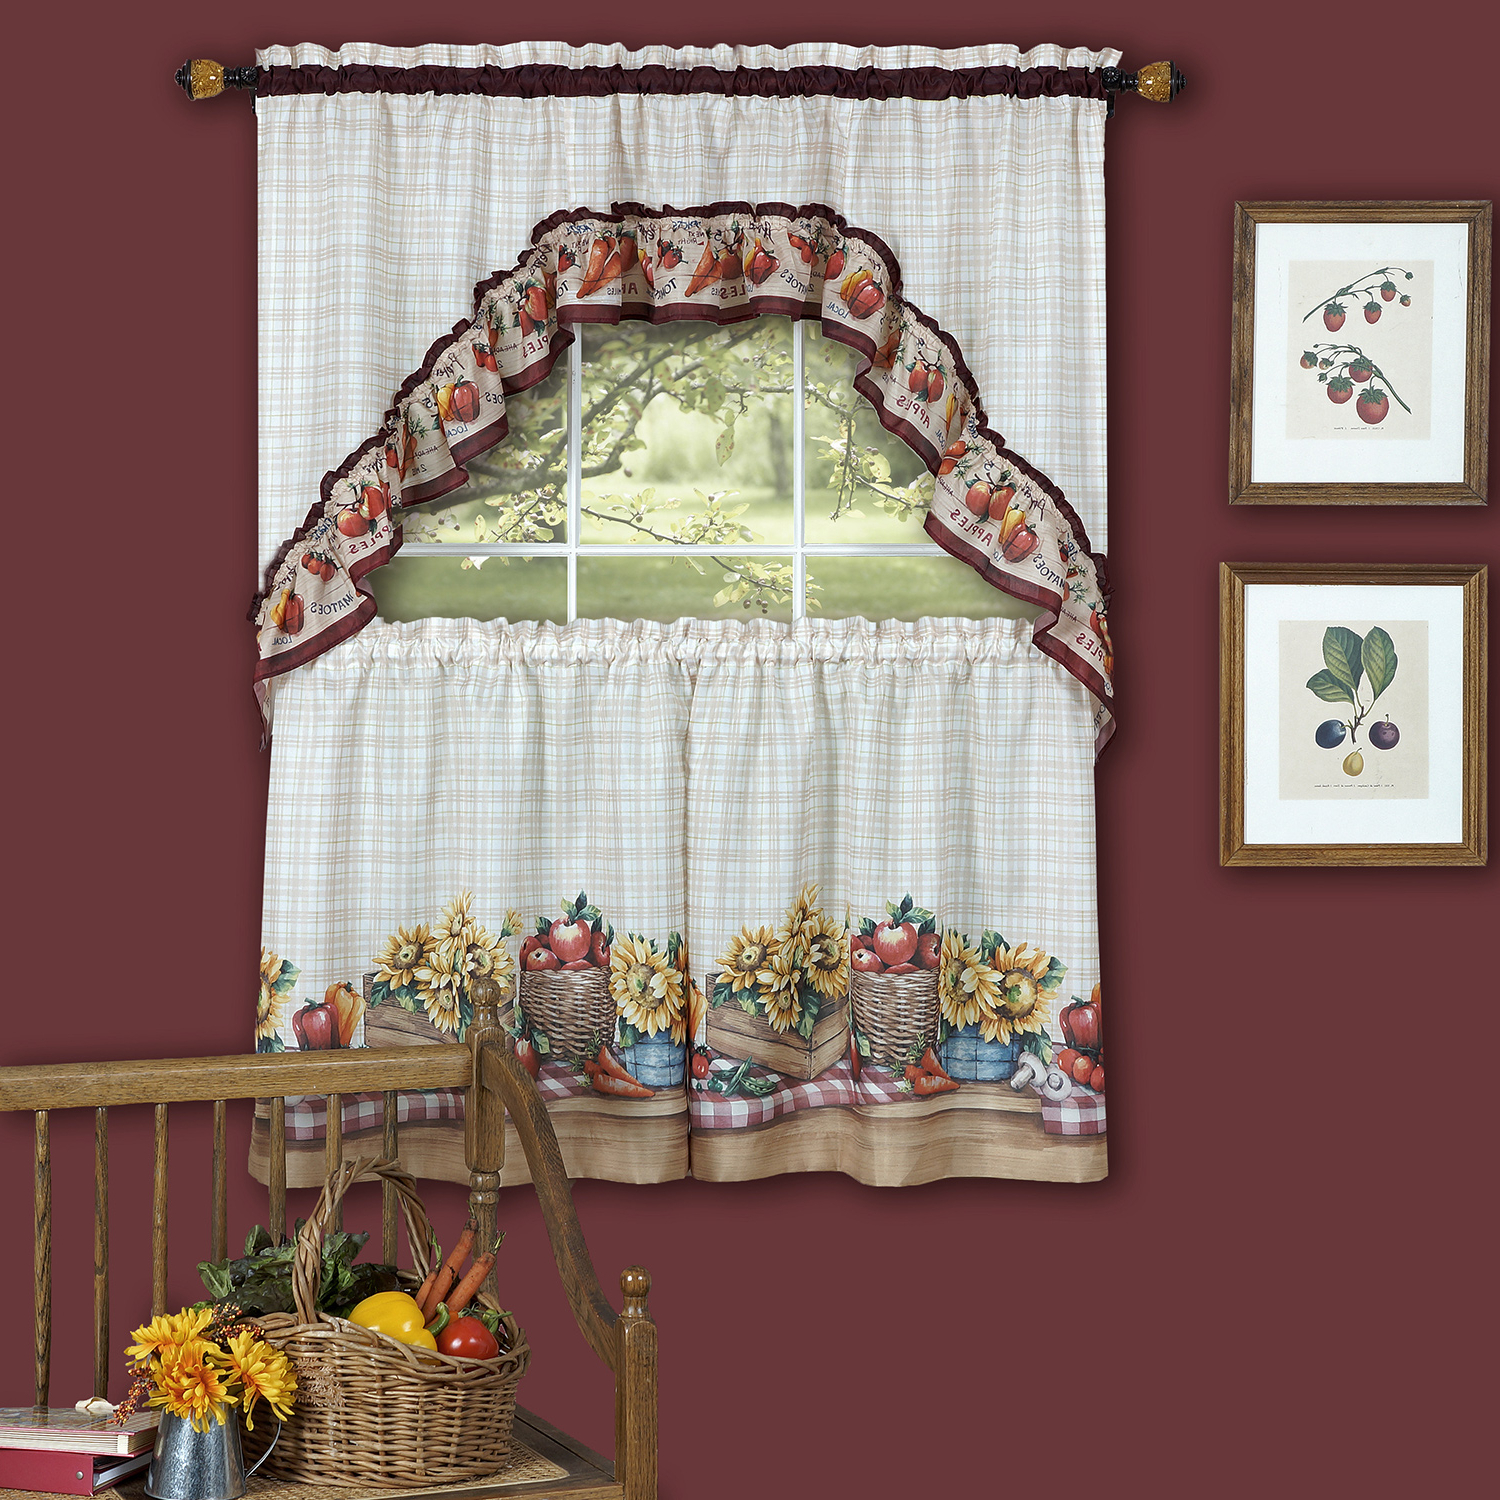 """Well Liked Details About Farmer's Market Fruit Flowers Kitchen Curtain 36"""" Tier Pair & 30"""" Swag Set Regarding Cotton Blend Ivy Floral Tier Curtain And Swag Sets (View 4 of 20)"""